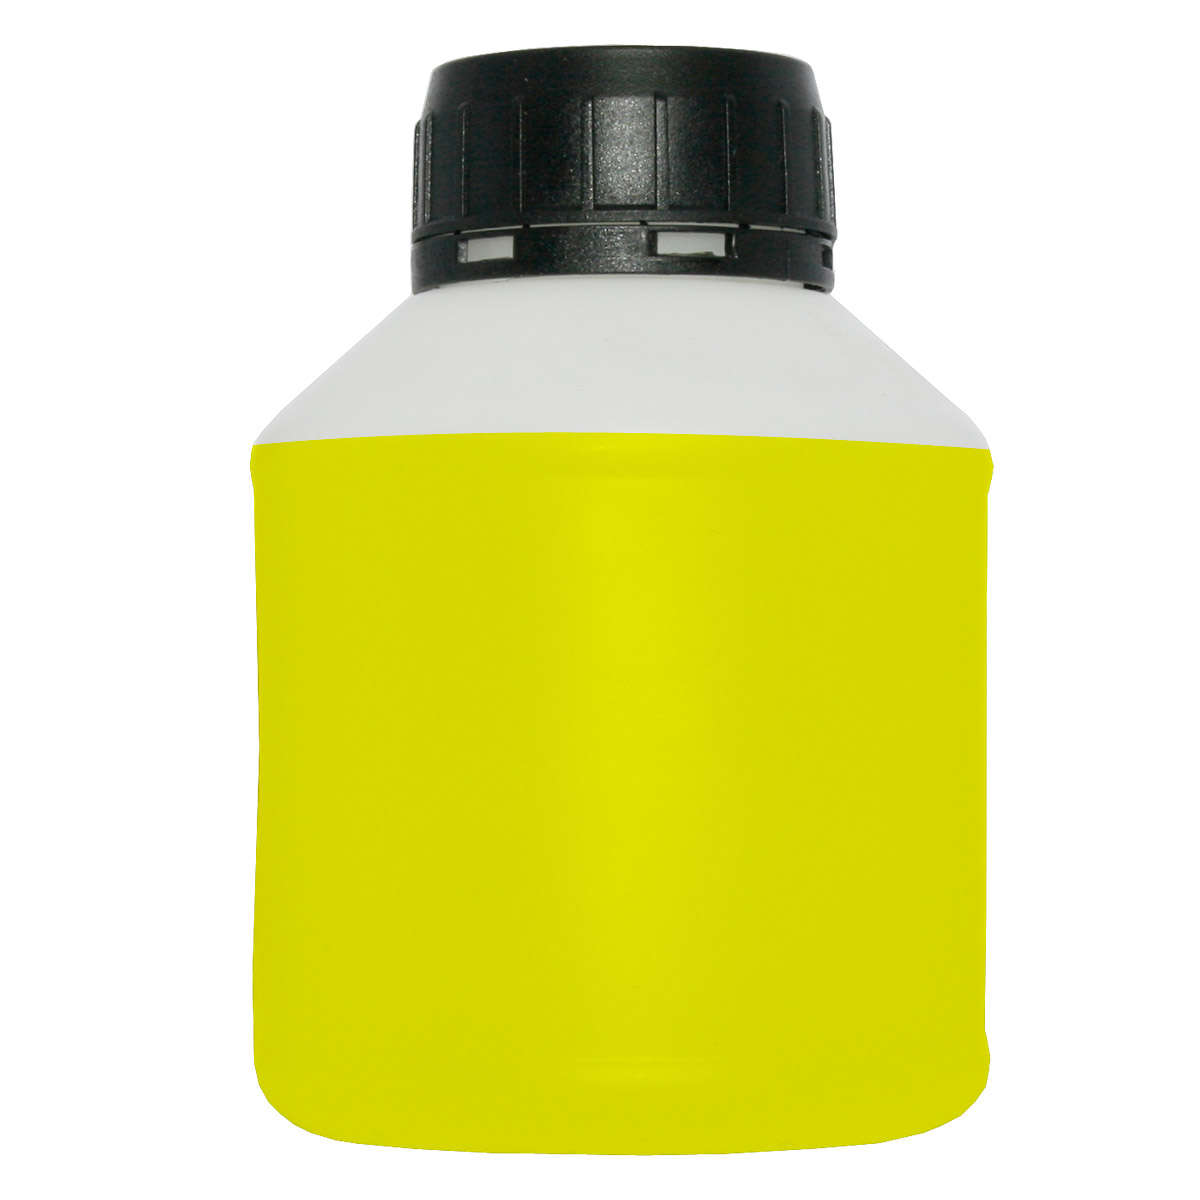 Cleaning fluid for print heads - yellow, inside